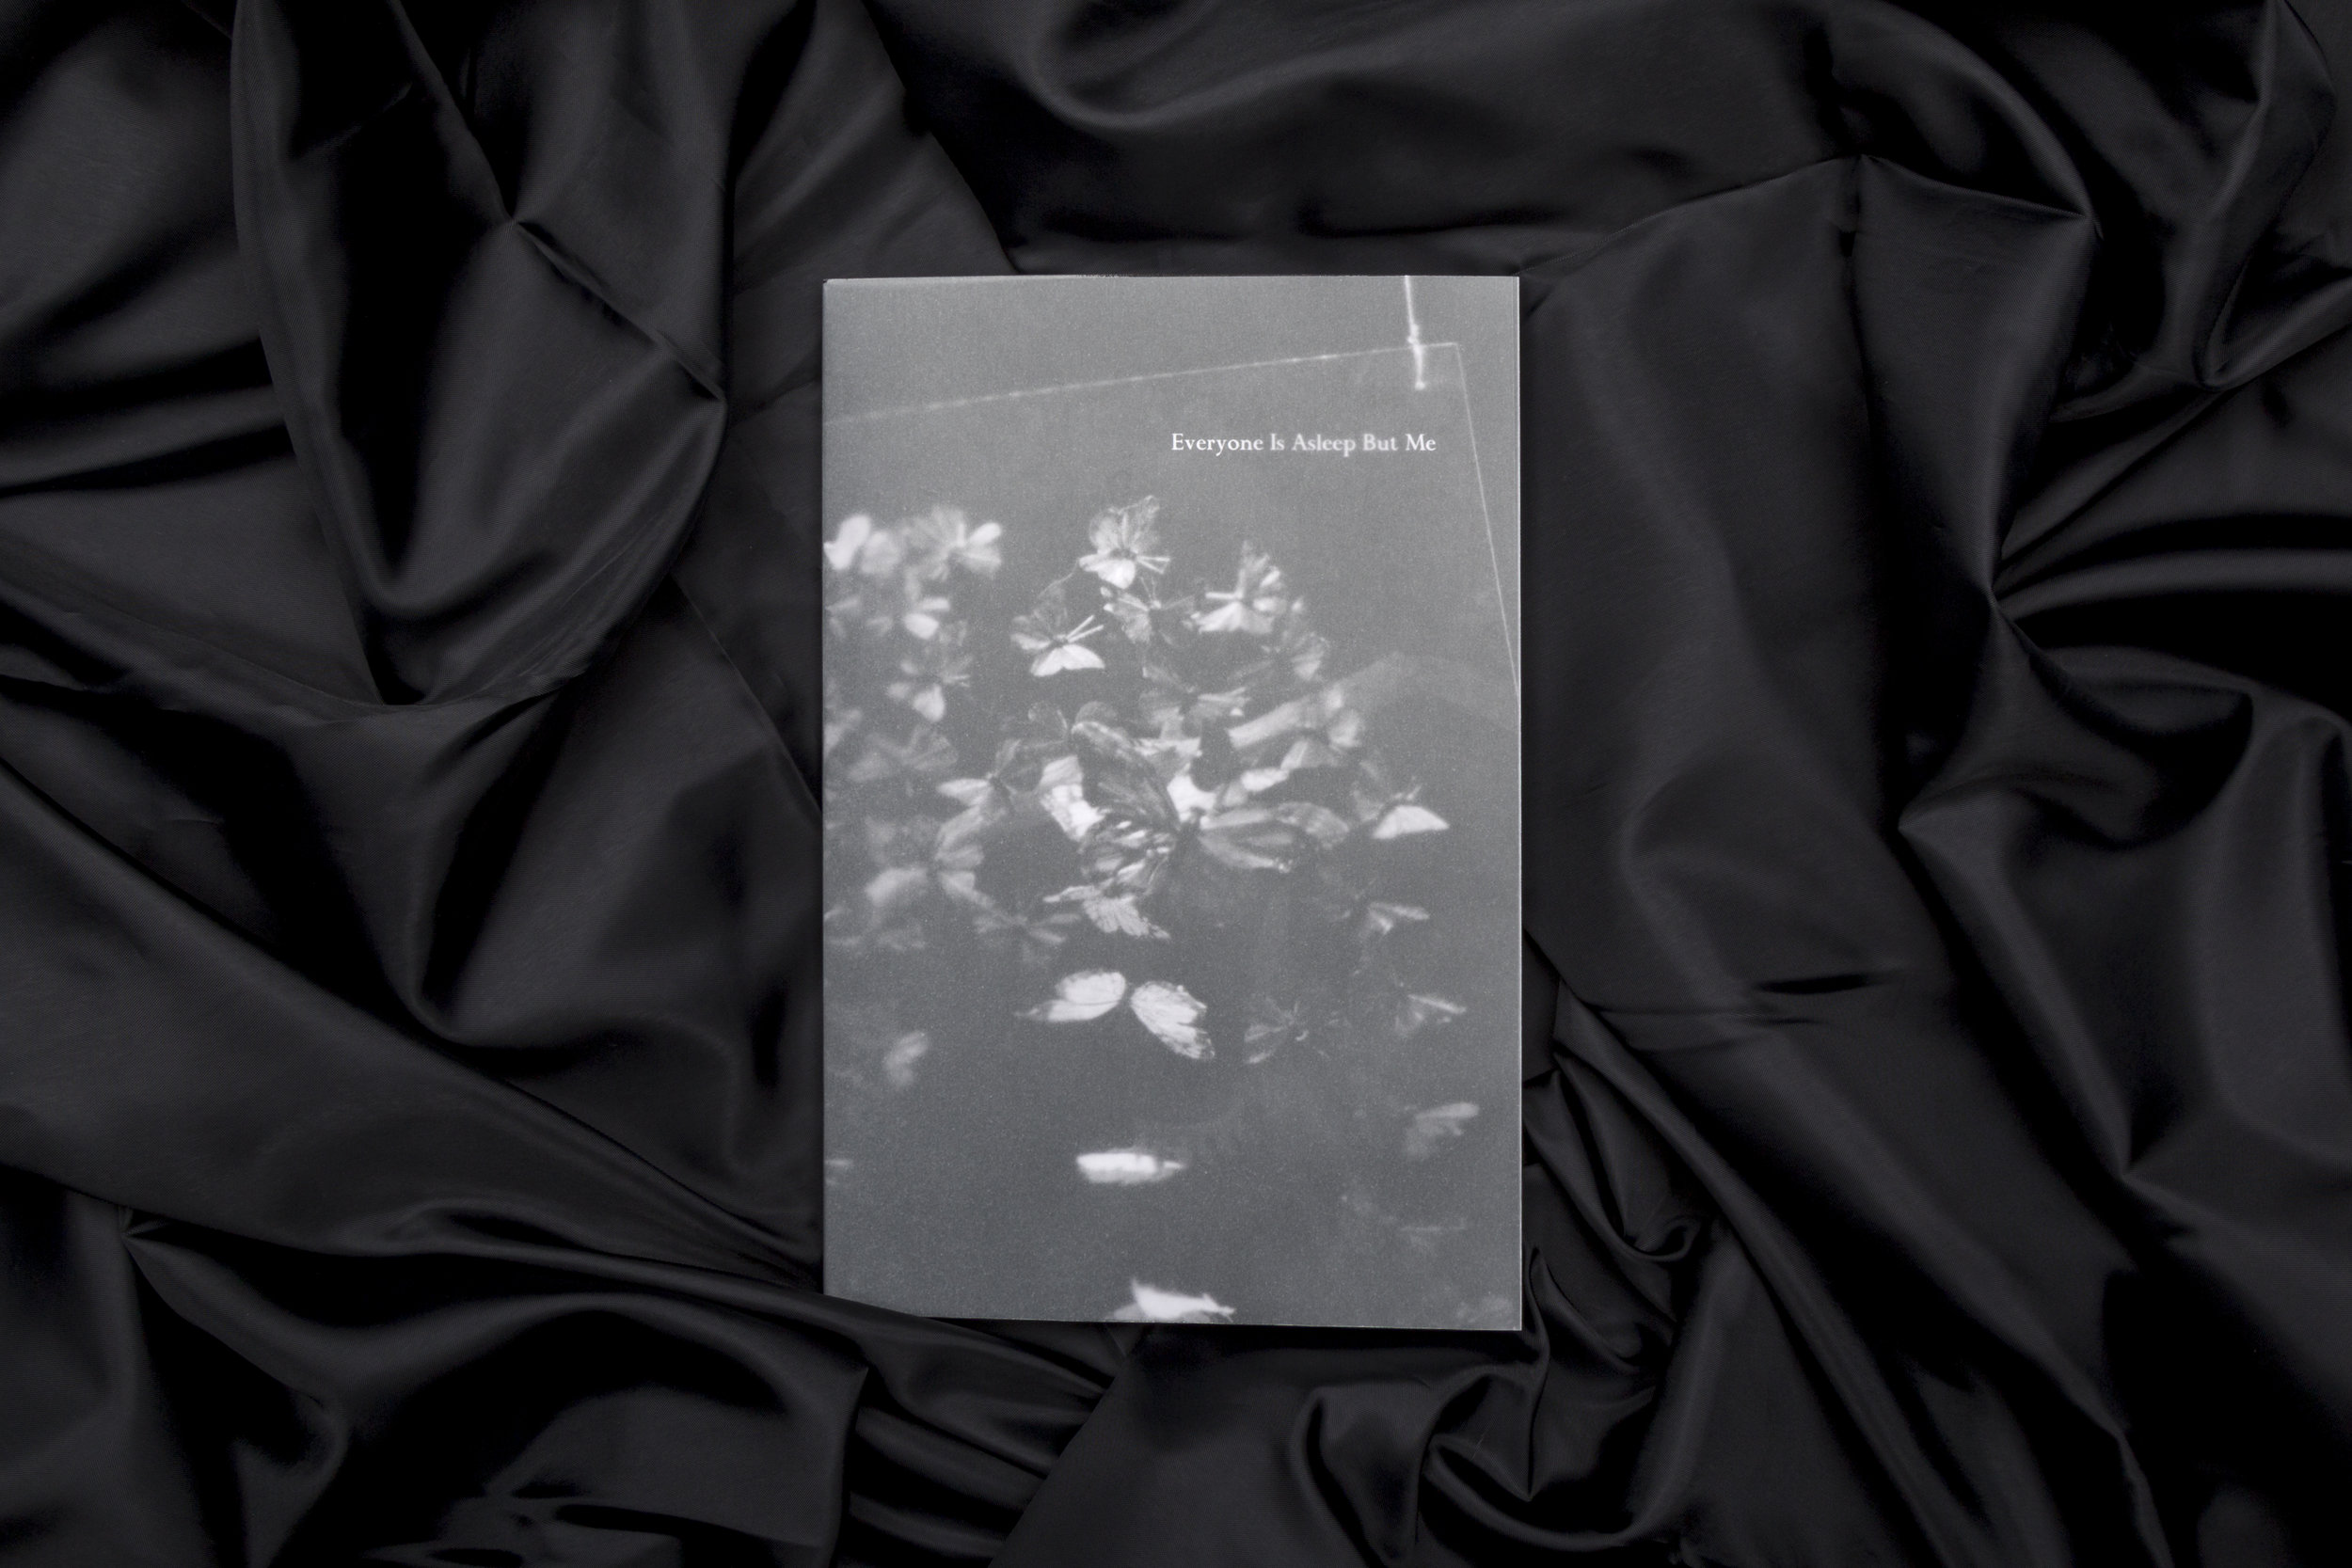 Everyone Is Asleep But Me: A Collaborative Project Considering Night  is now available for purchase online! Check it out in the bookshop. Edited by Angelina Lin and Marisa Sottos, the book pairs up twenty-four visual artists and writers to create work around their ideas about night. Its pages include intense emotional experiences, fictional narratives, and contemplative humor.